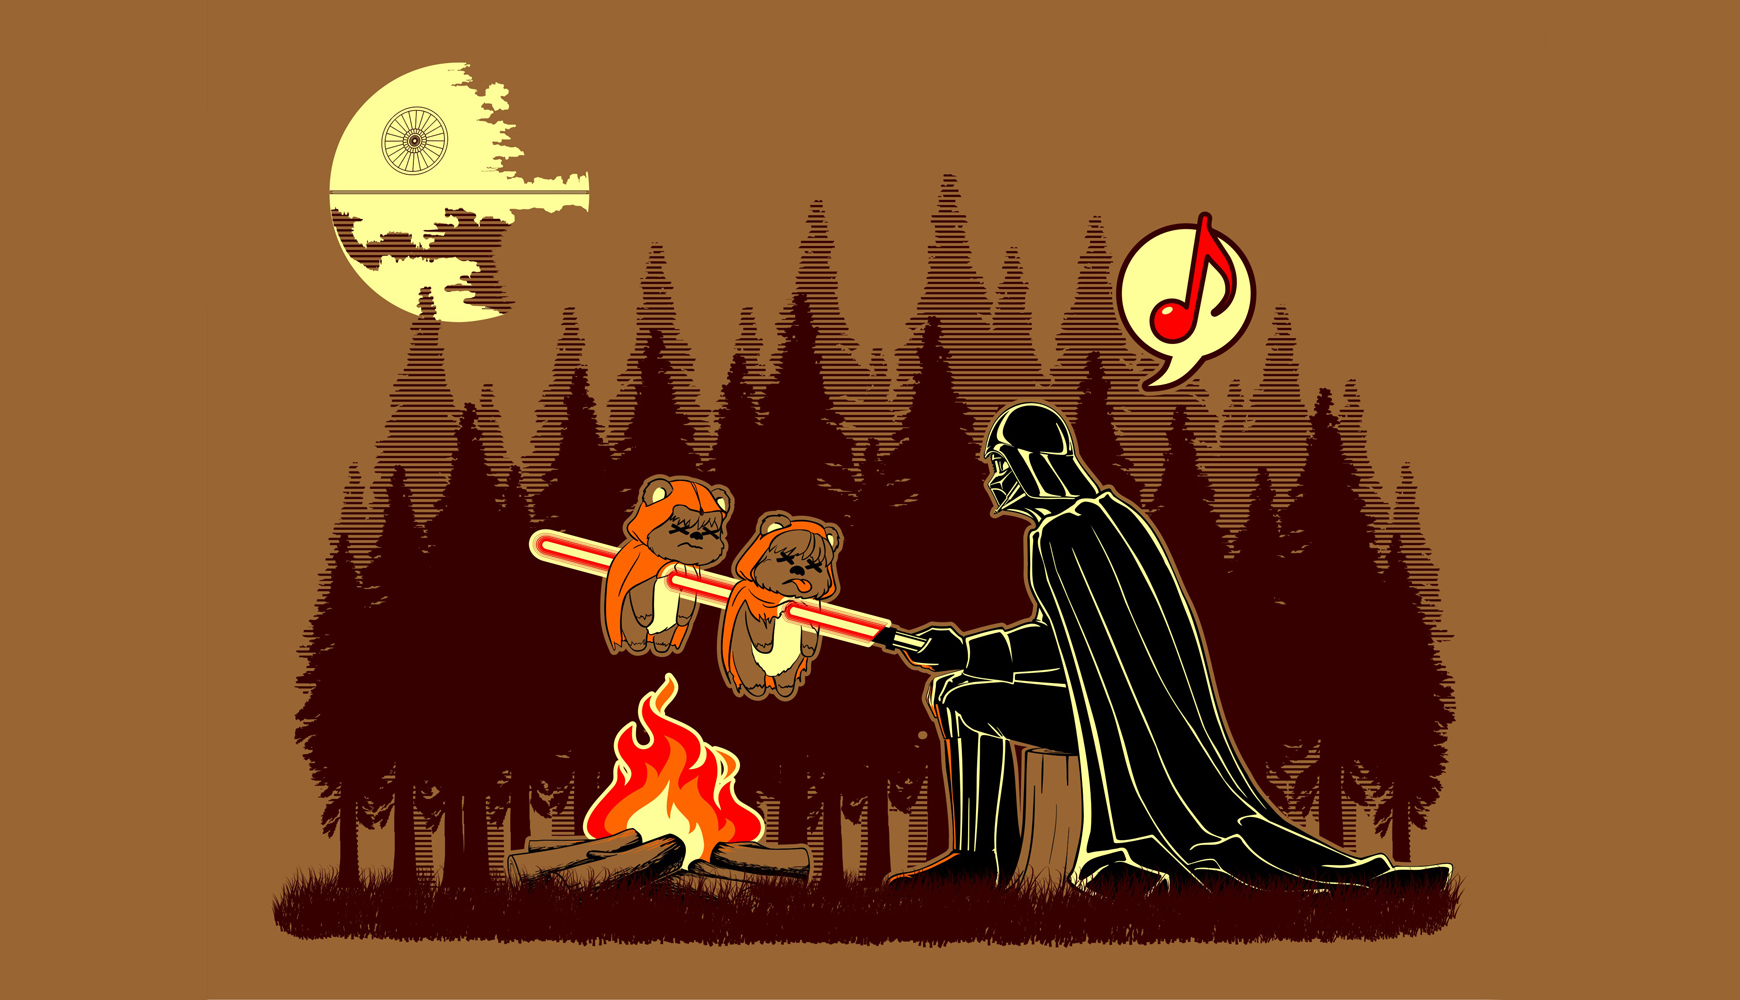 Funny Star Wars Backgrounds Star Wars Sadic Funny Fire